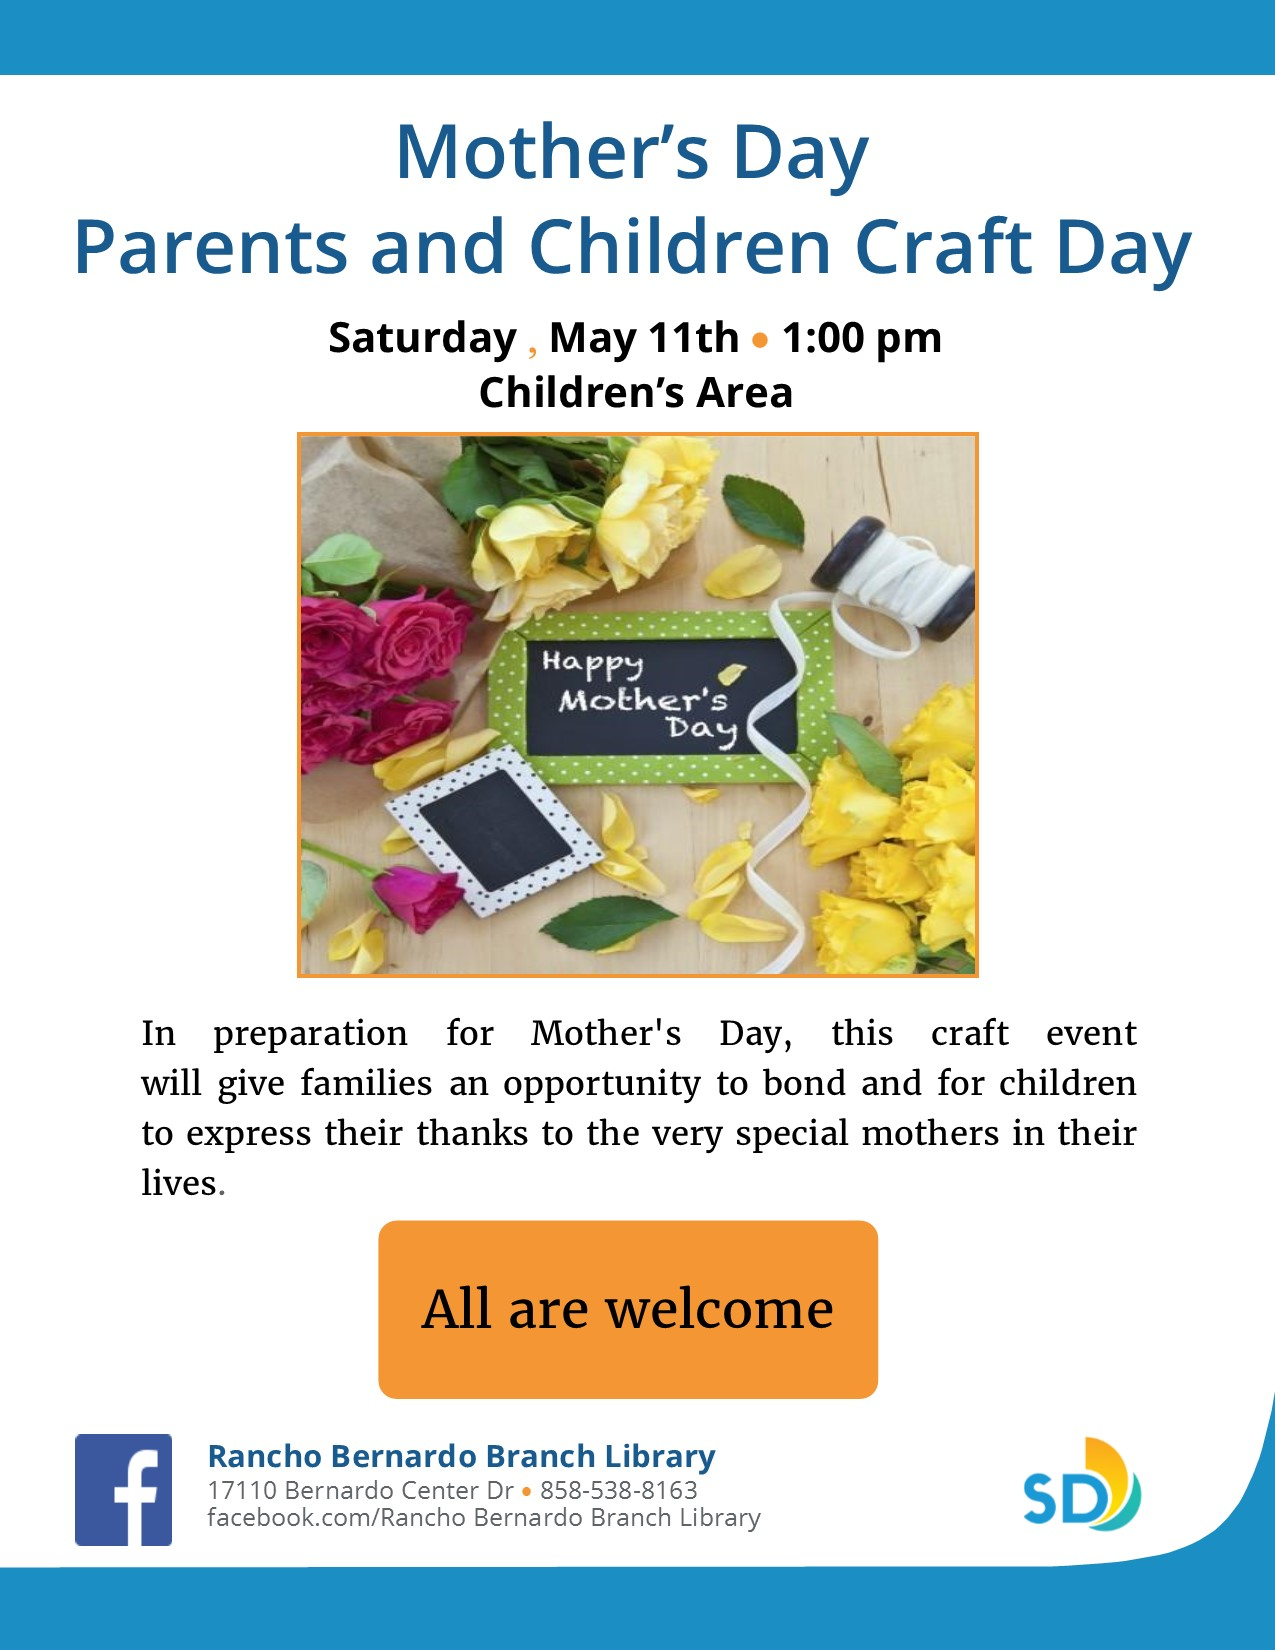 Mother's Day Craft Event Flyer